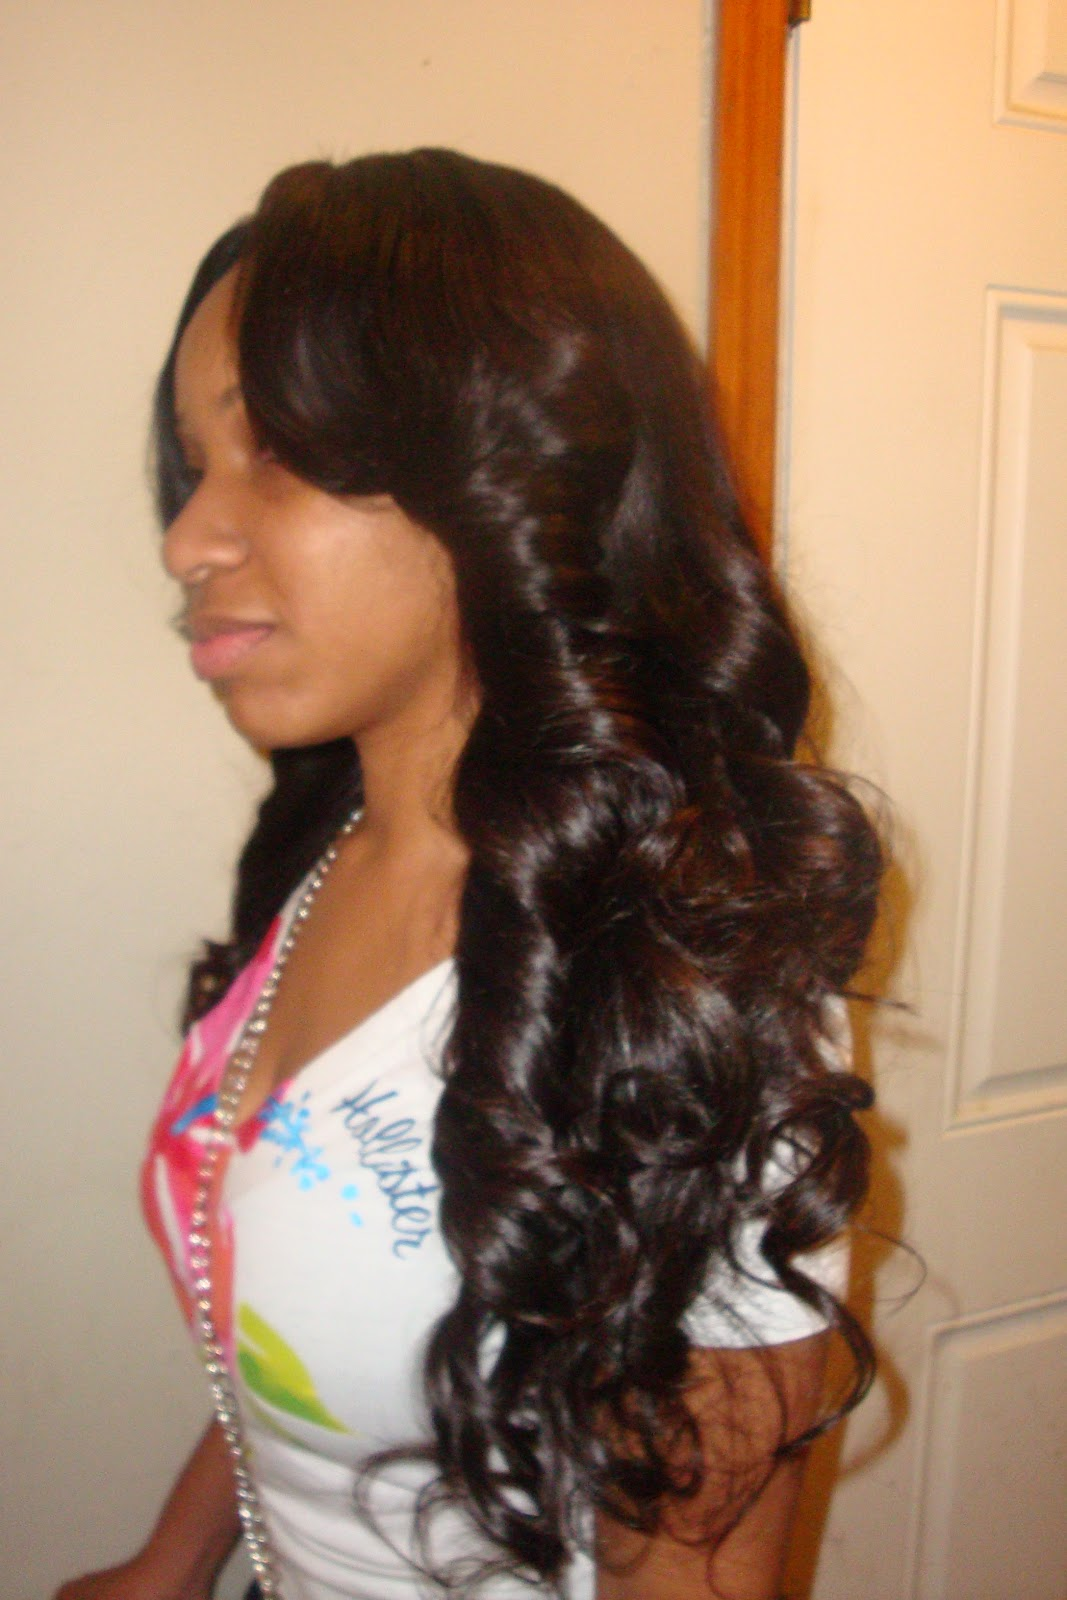 ... Bob With Side Bangs Weave in addition Sew In Bob With Bangs. on sew in